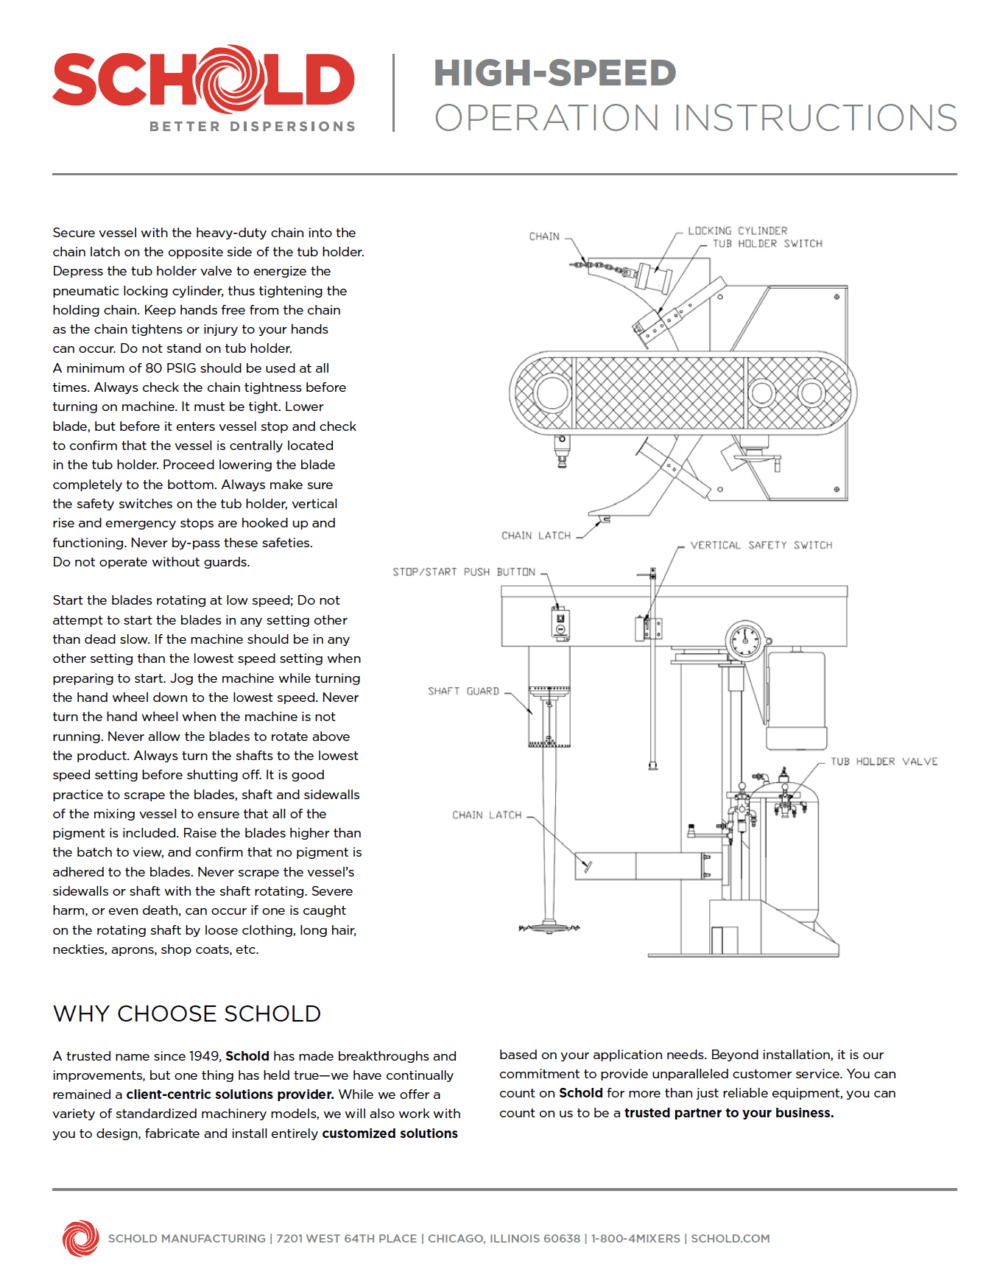 Schold High-Speed Operating Instructions